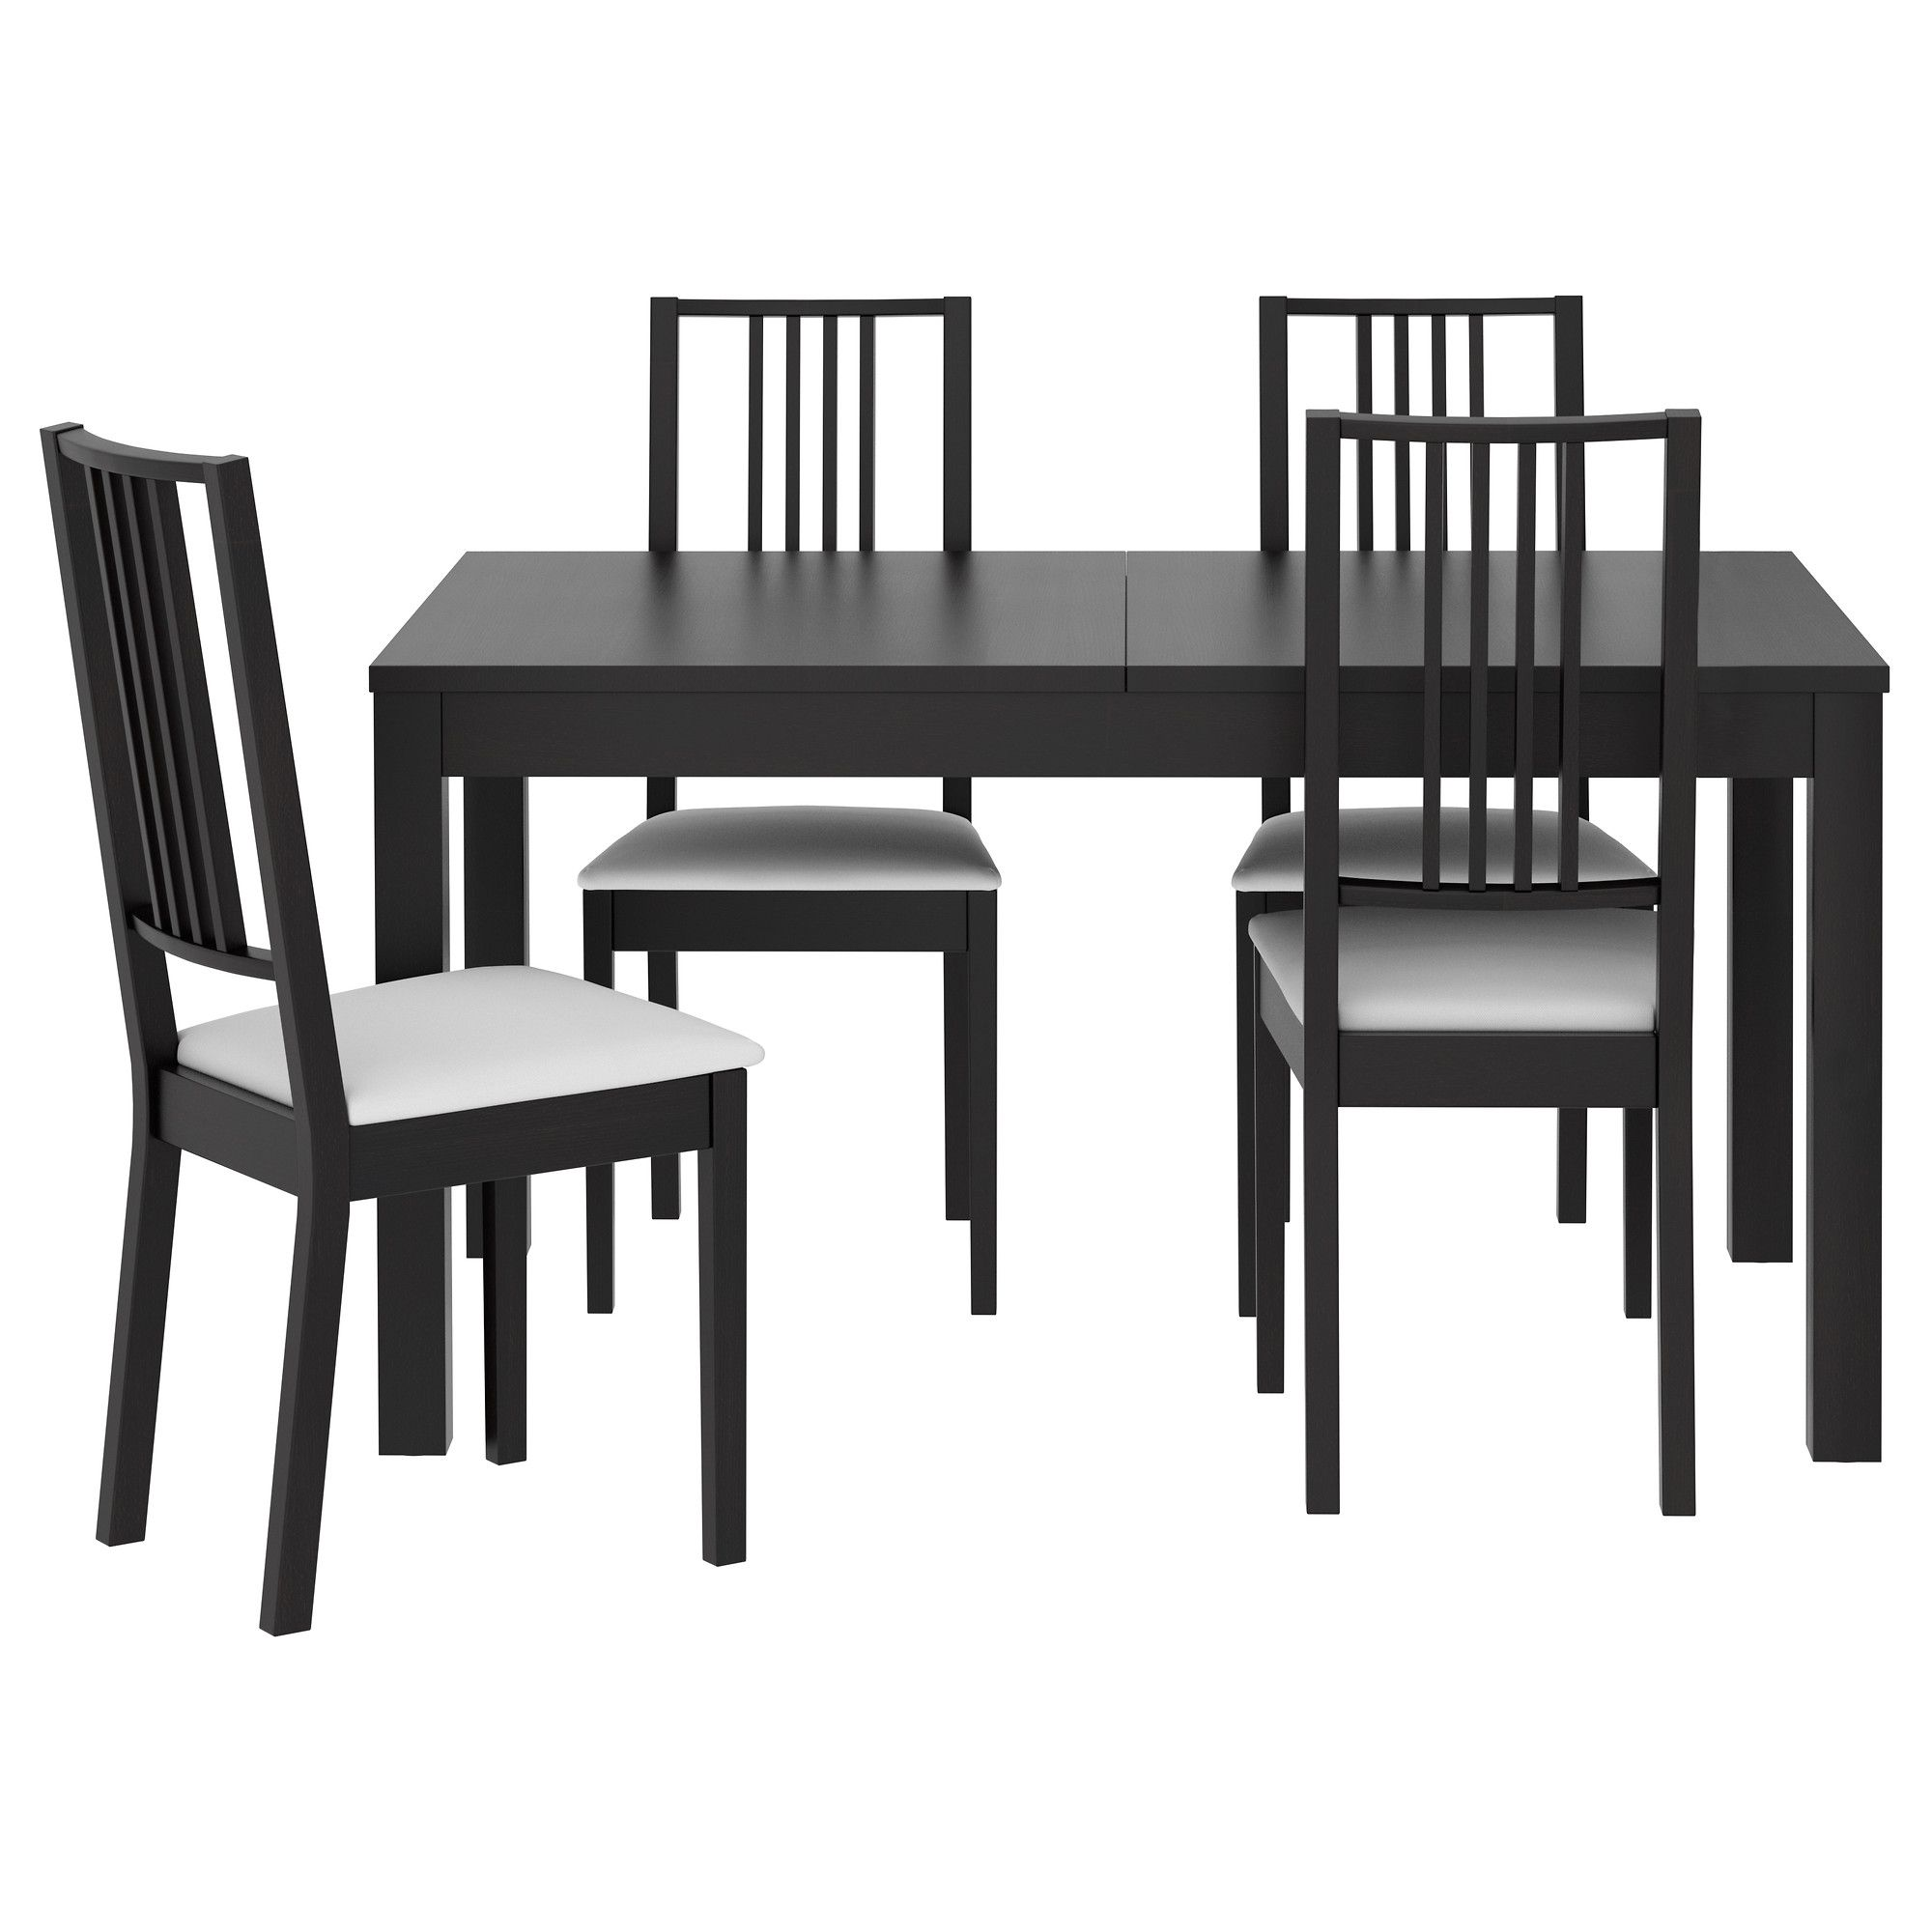 awesome black color dining table interior design featuring black varnished wooden dining chair with white fabric seat also black varnished wooden simple : black kitchen dining sets